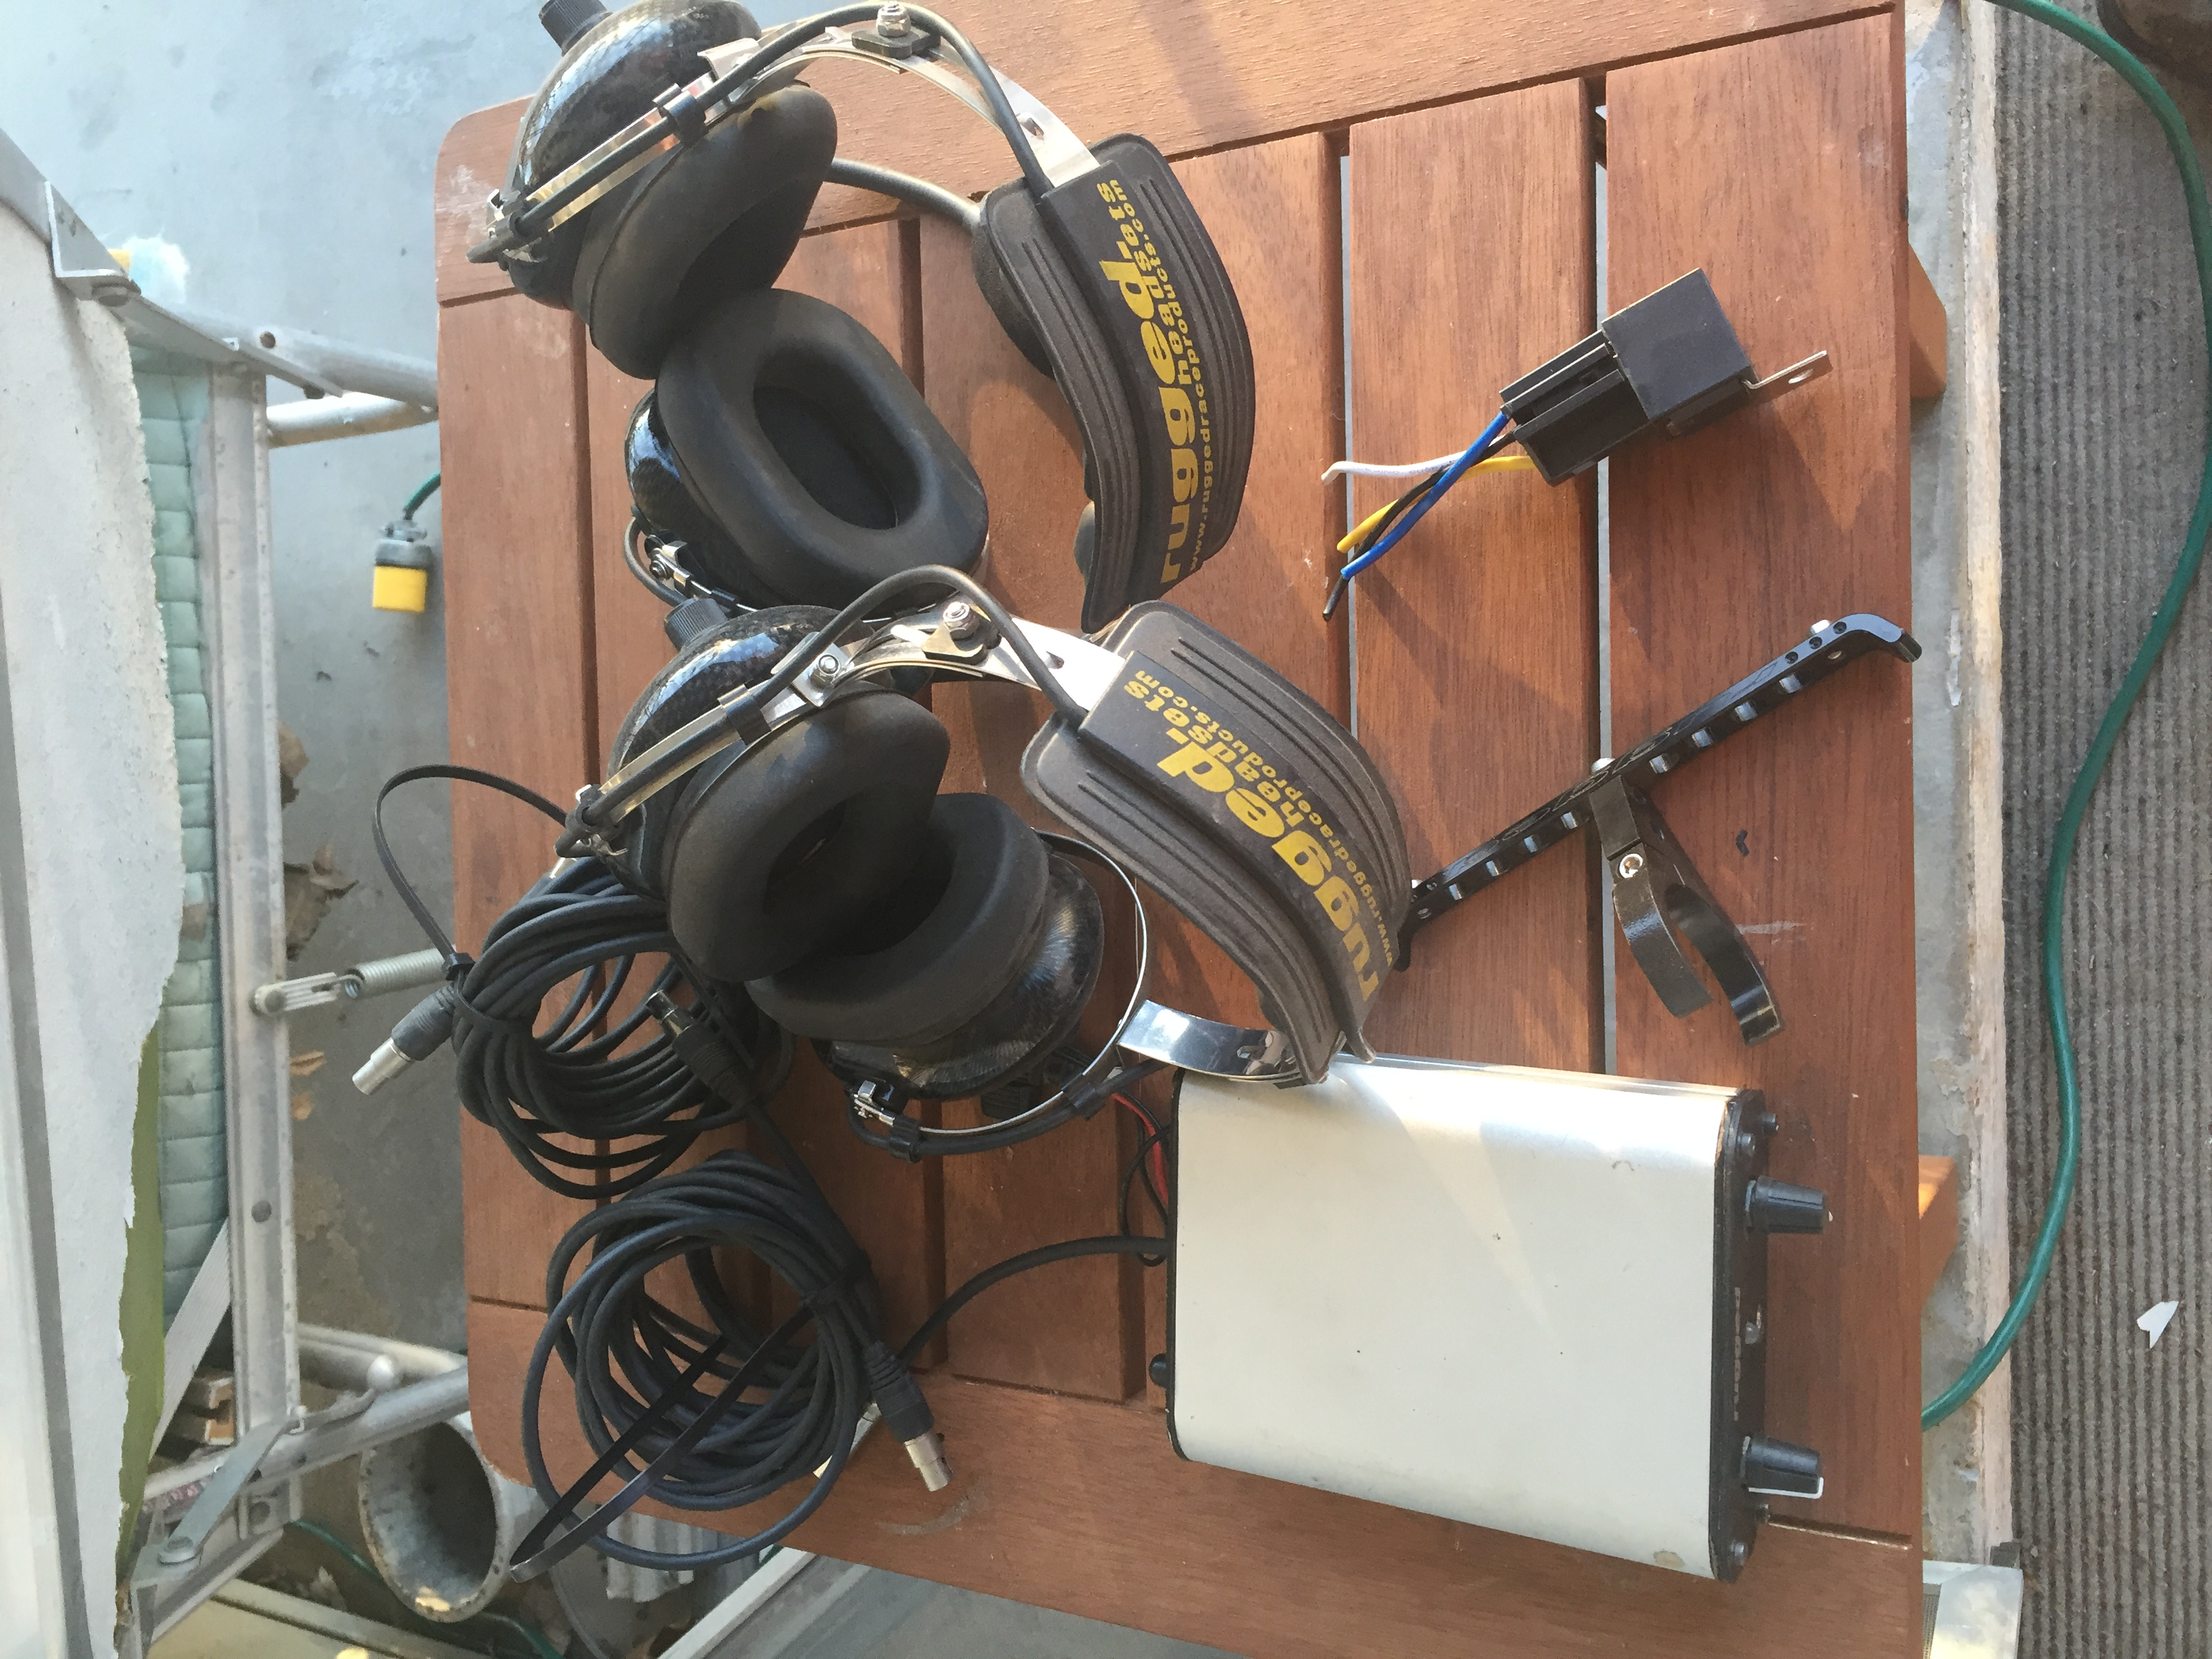 Rugged Radio with headsets, cables, relay & hanger